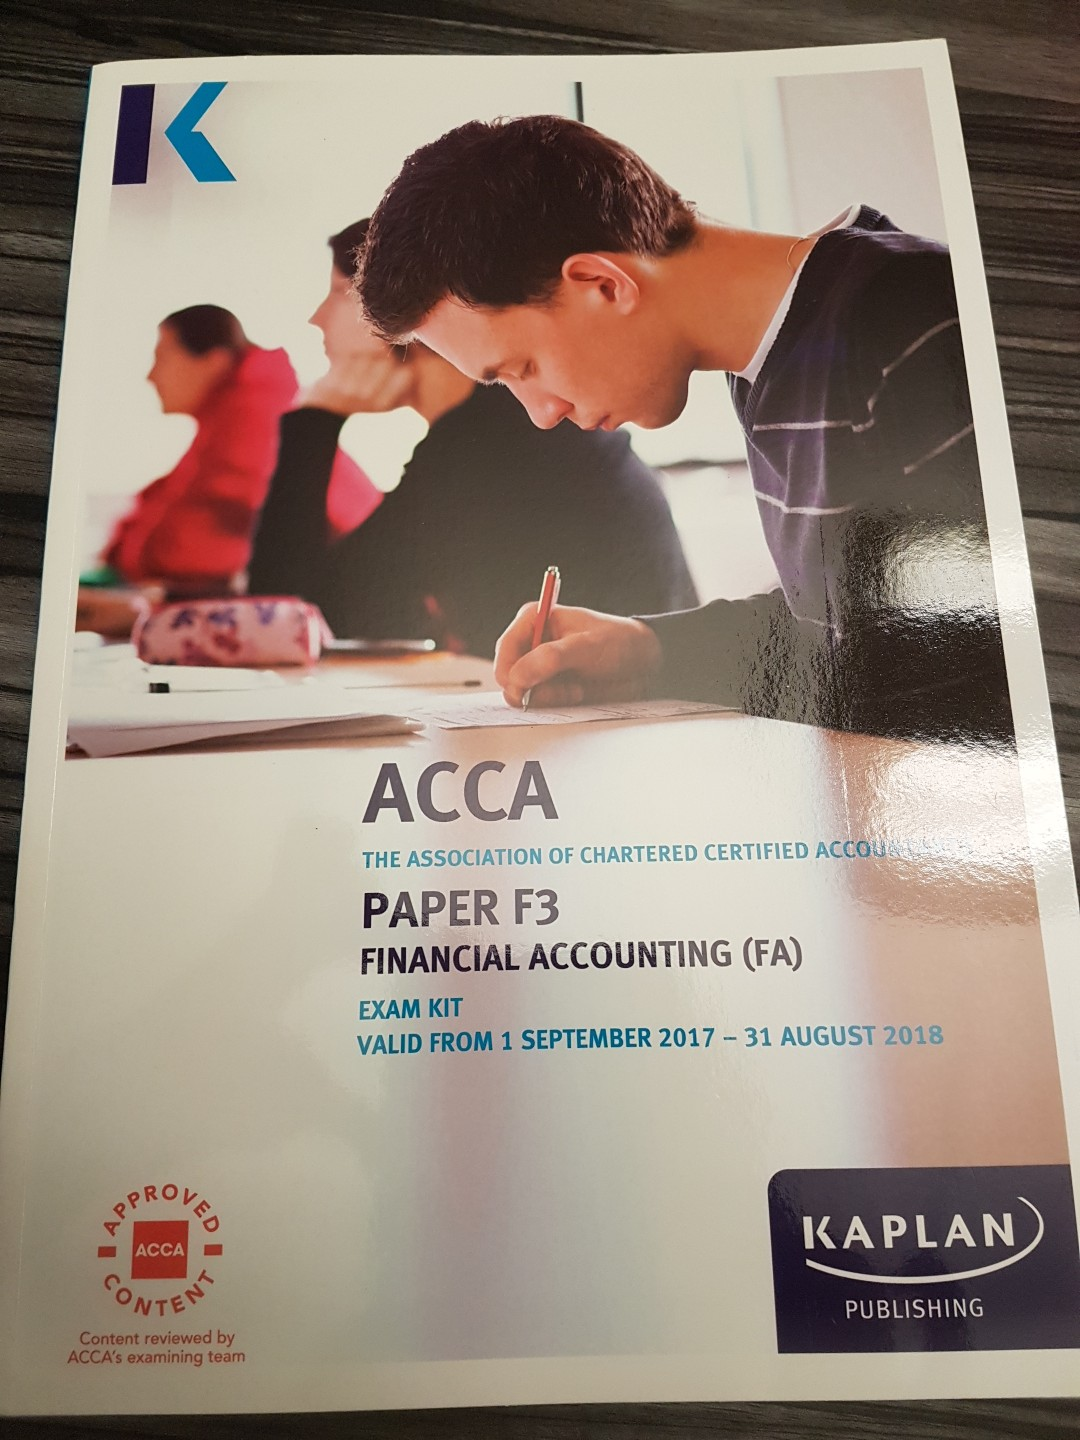 ACCA F3, Books & Stationery, Textbooks, Professional Studies